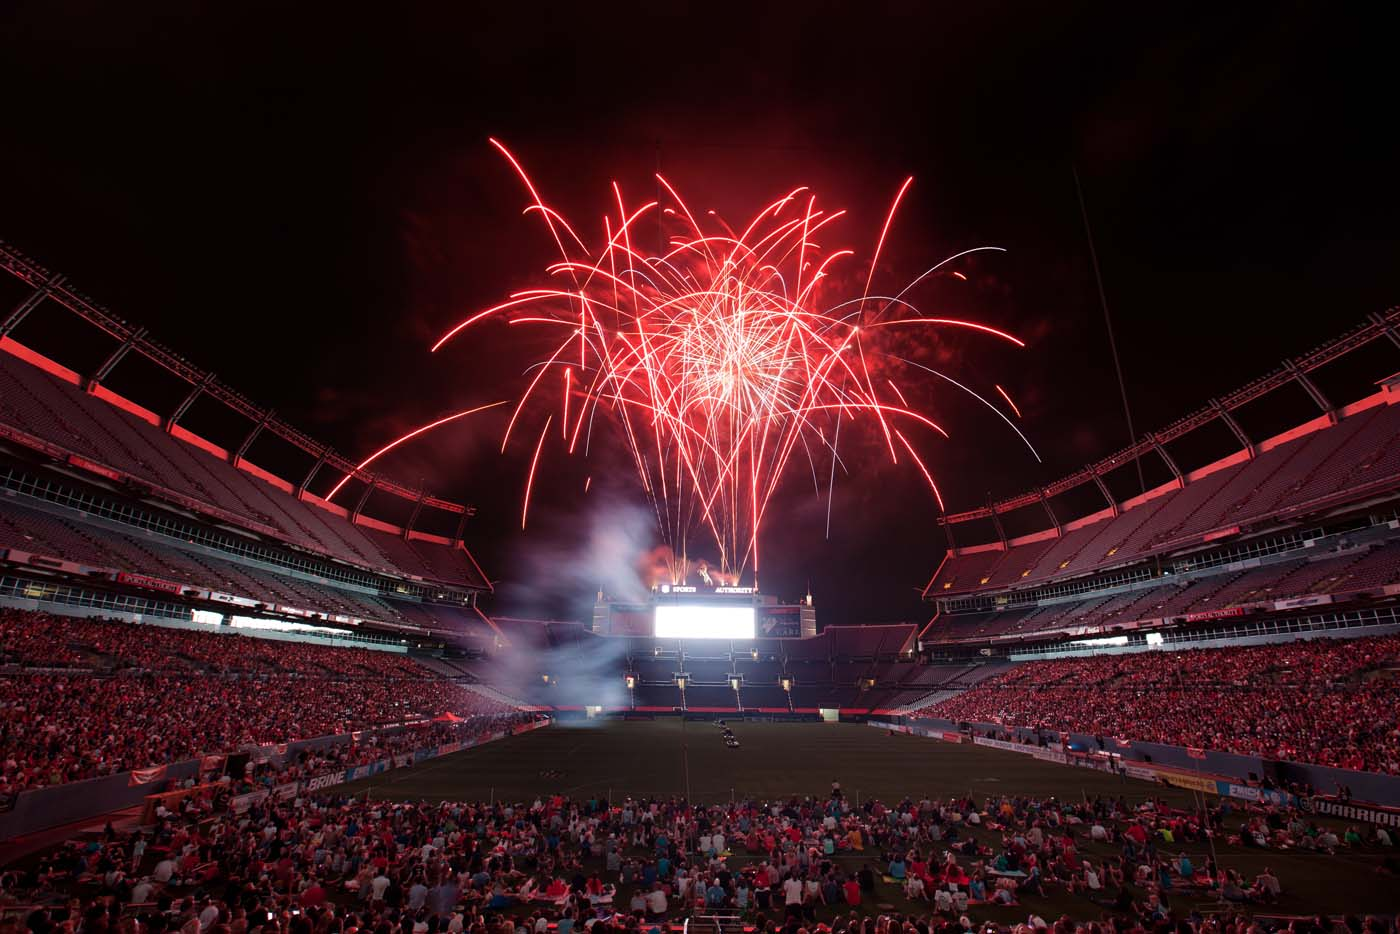 DENVER, CO - JULY 4: Fans are treated to a fireworks display after a Major League Lacrosse game between the Ohio Machine and Denver Outlaws at Sports Authority Field at Mile High. (Justin Edmonds/Getty Images)